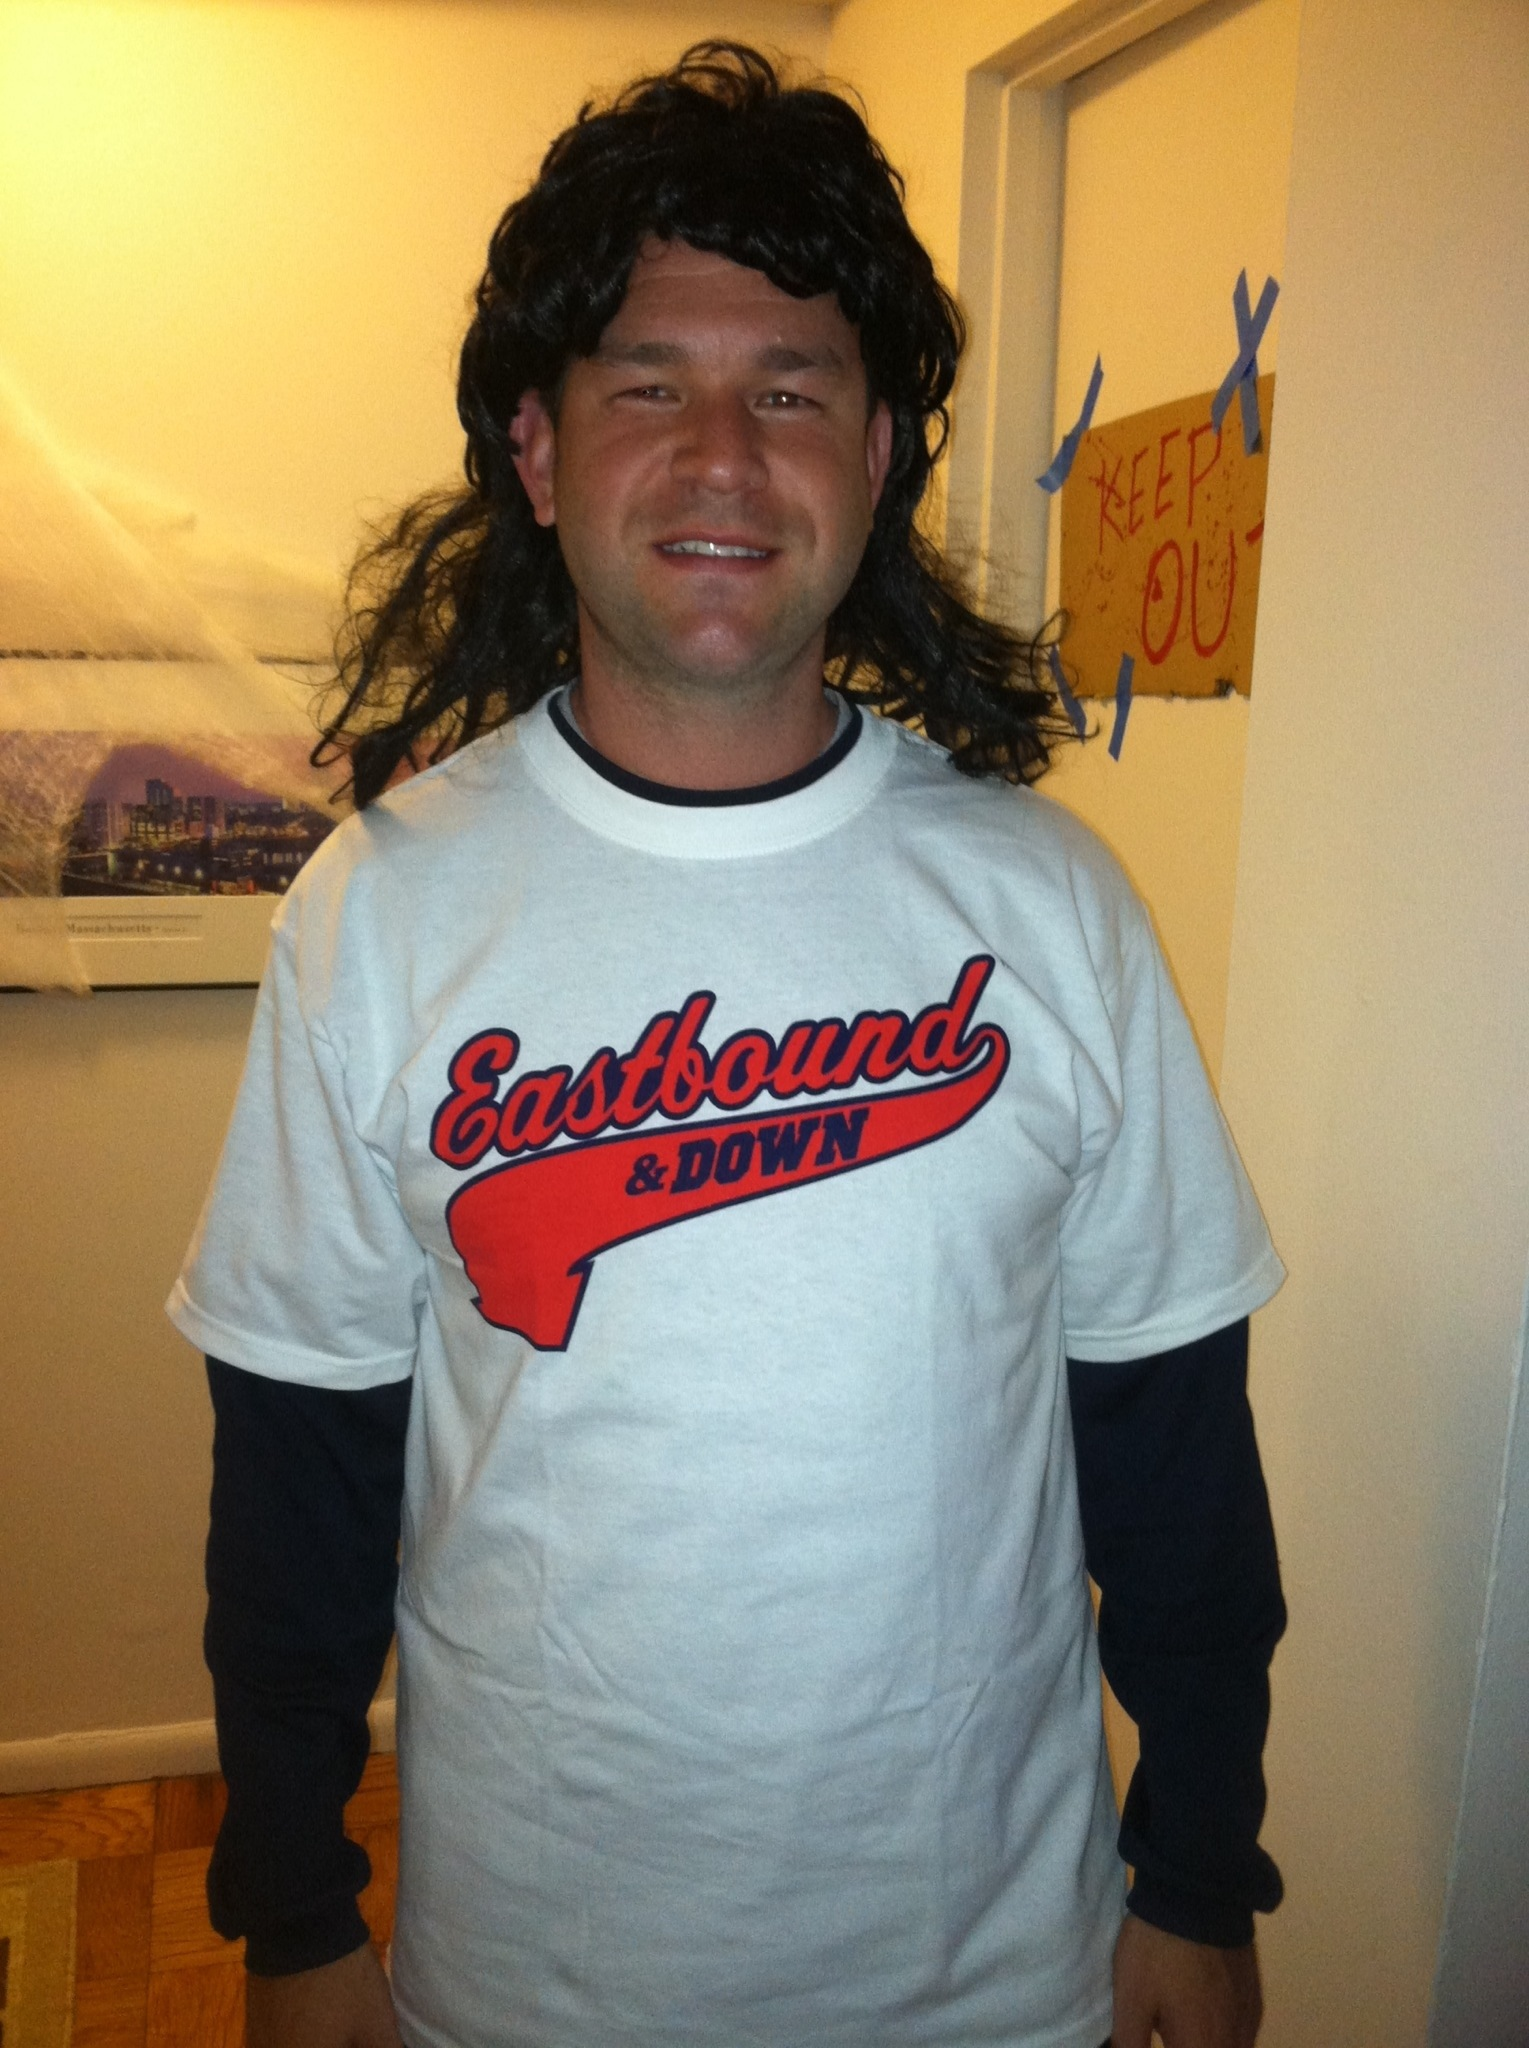 Eastbound and down costumes